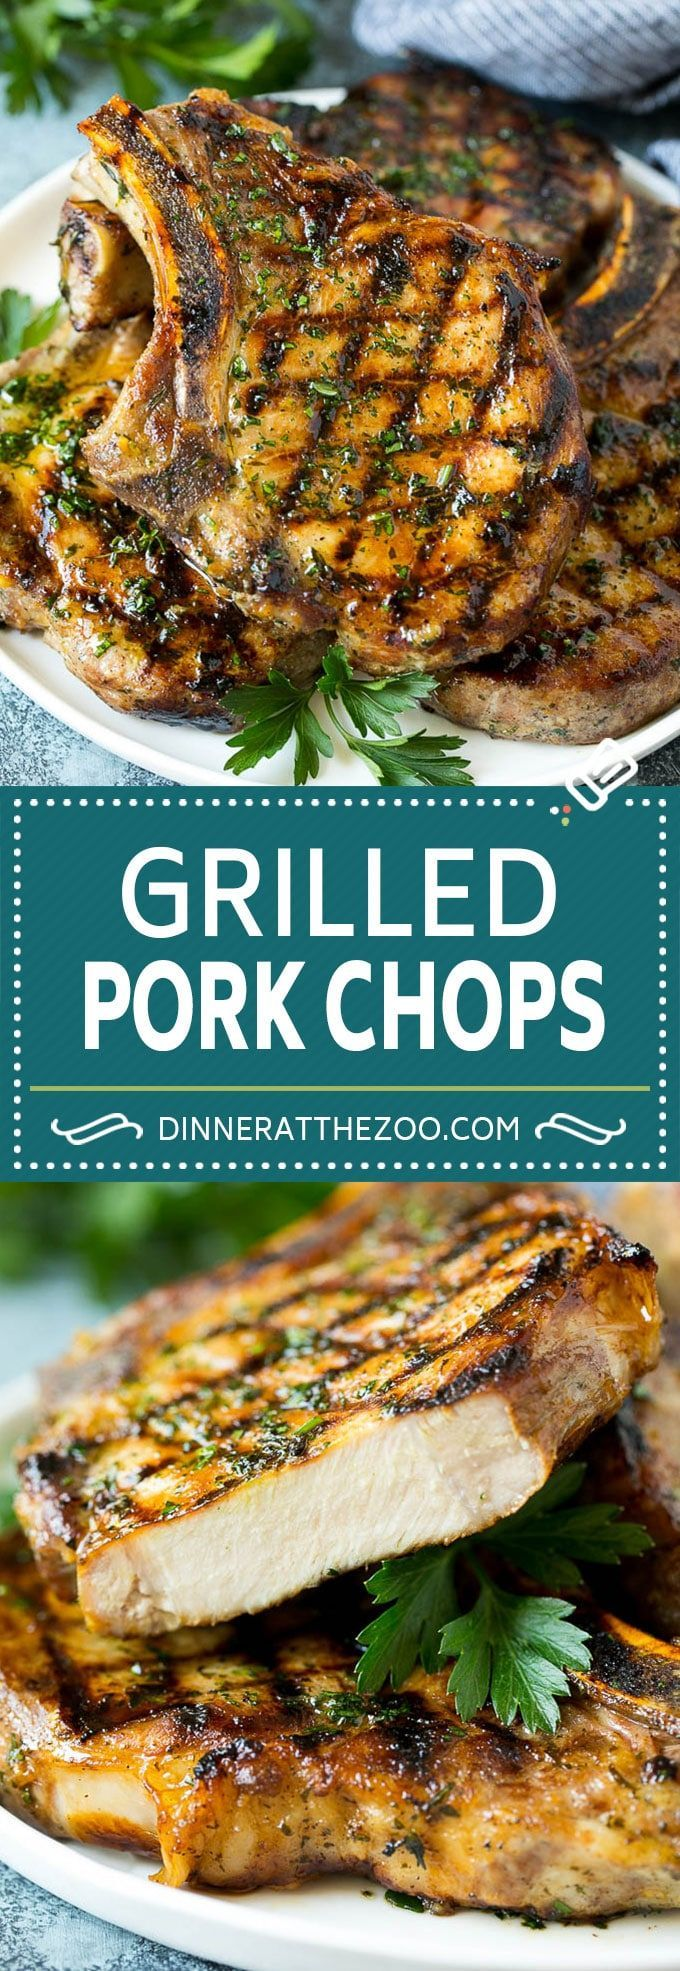 Grilled Pork Chops - Dinner at the Zoo